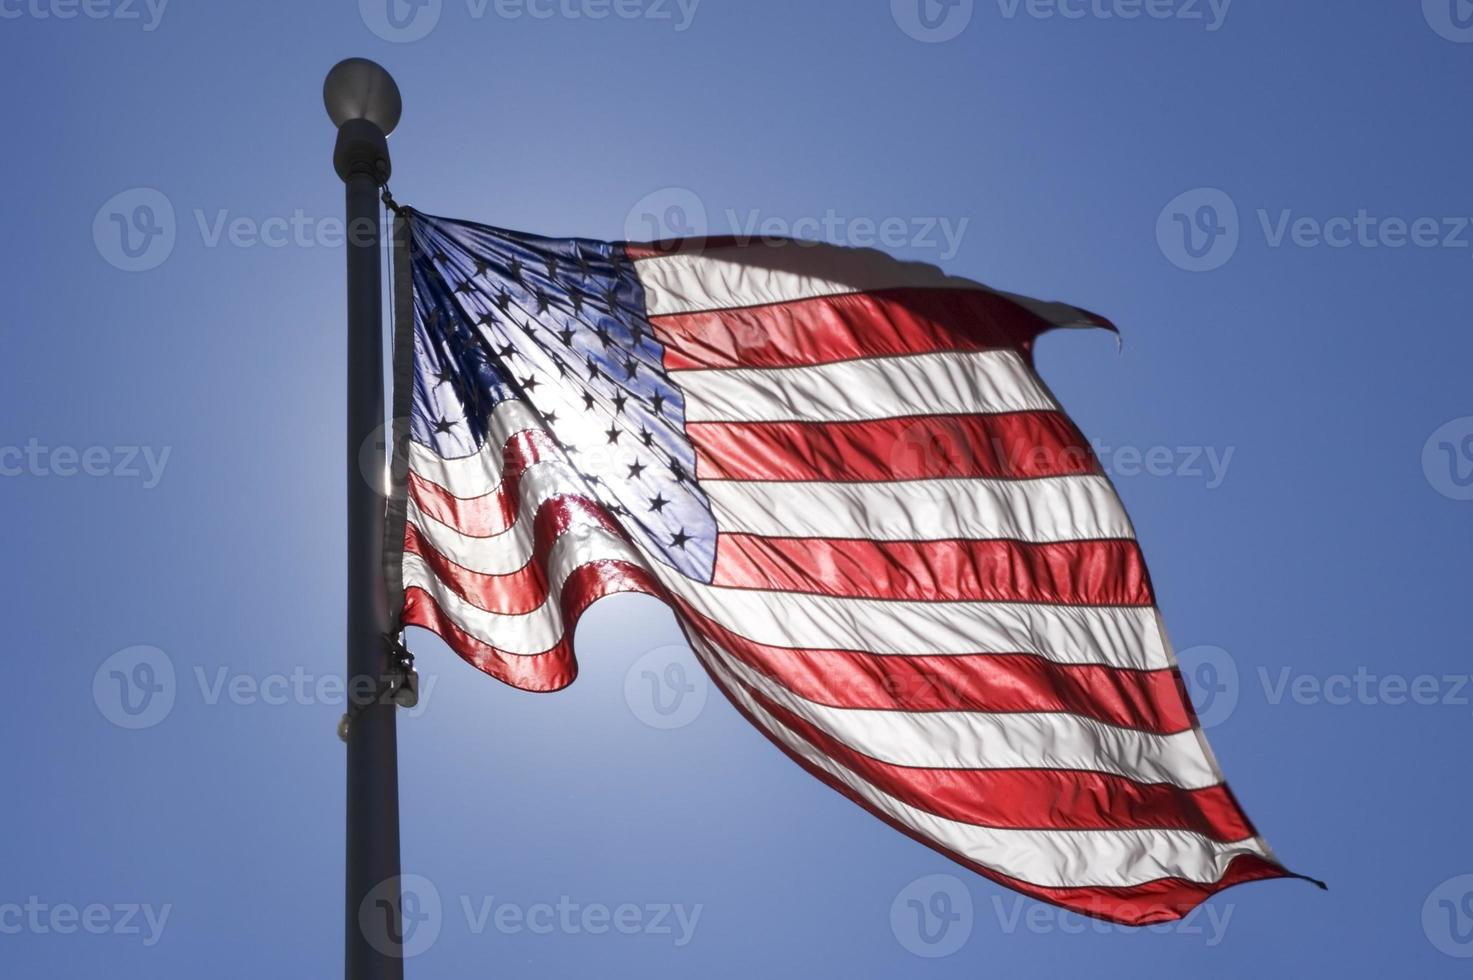 Flag waving in the wind photo